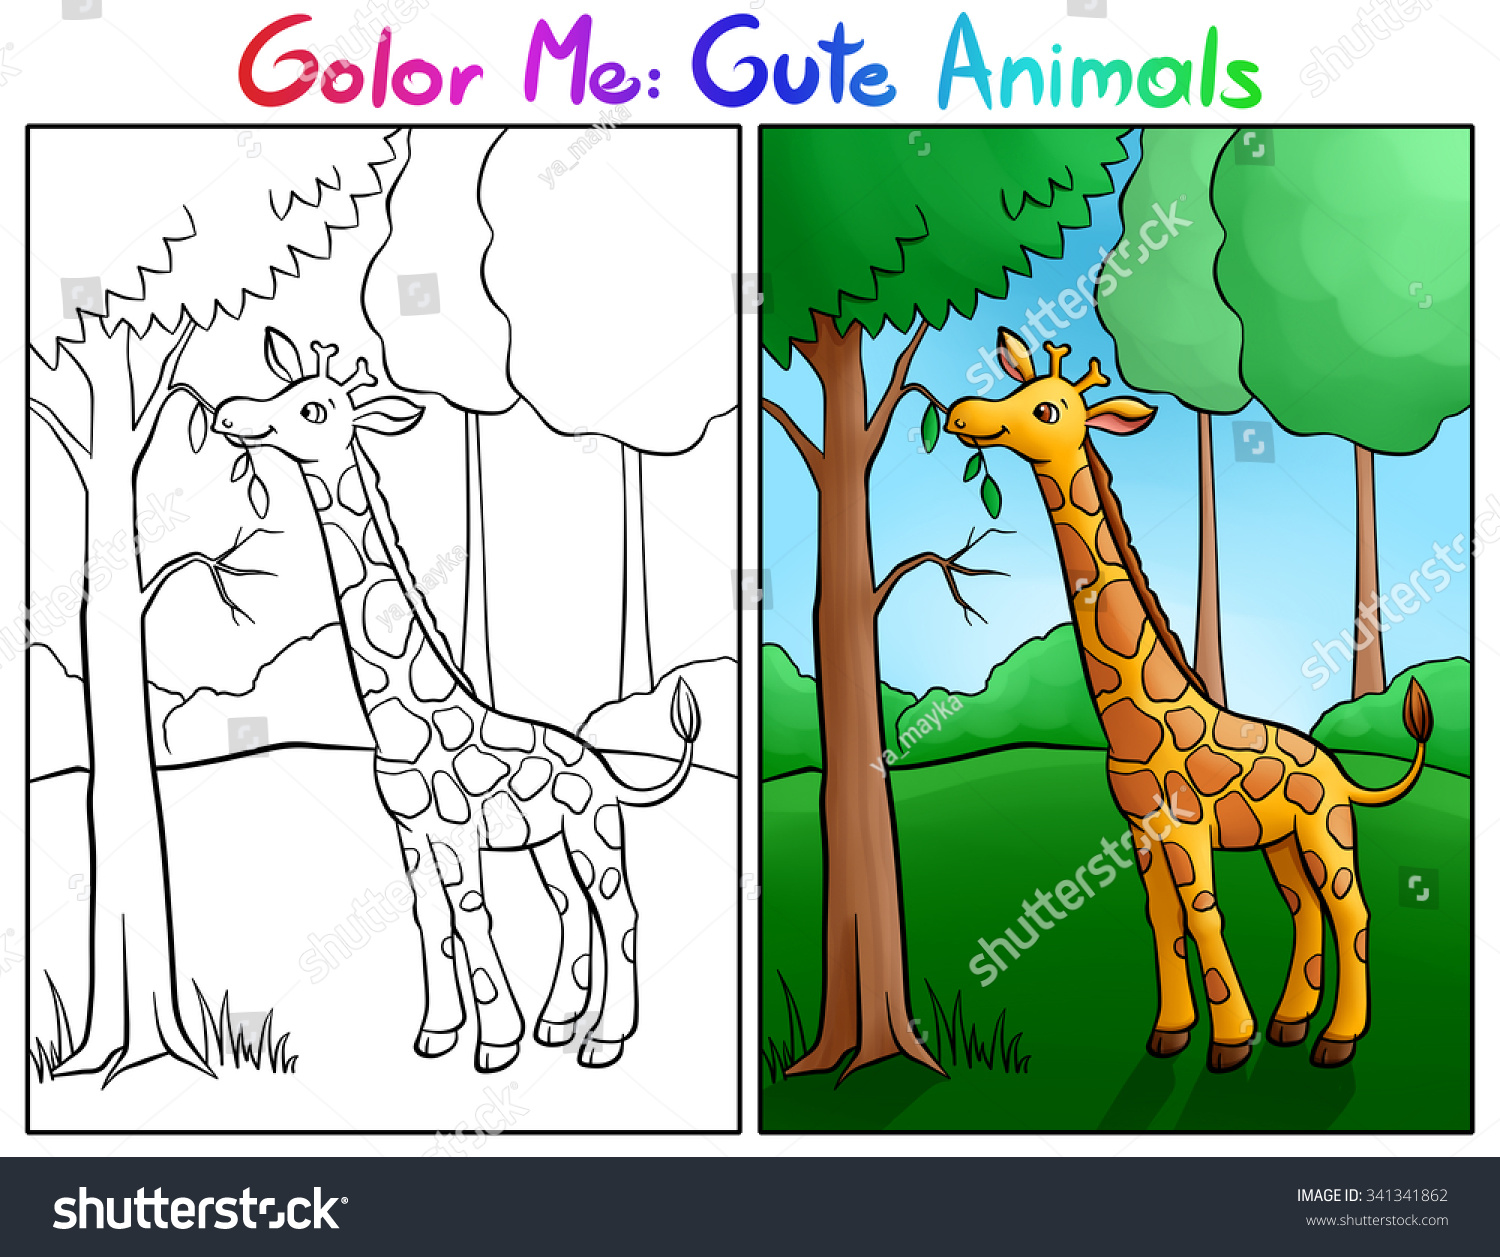 Colour Me Animals : Color me cute animals little giraffe eat leaves in